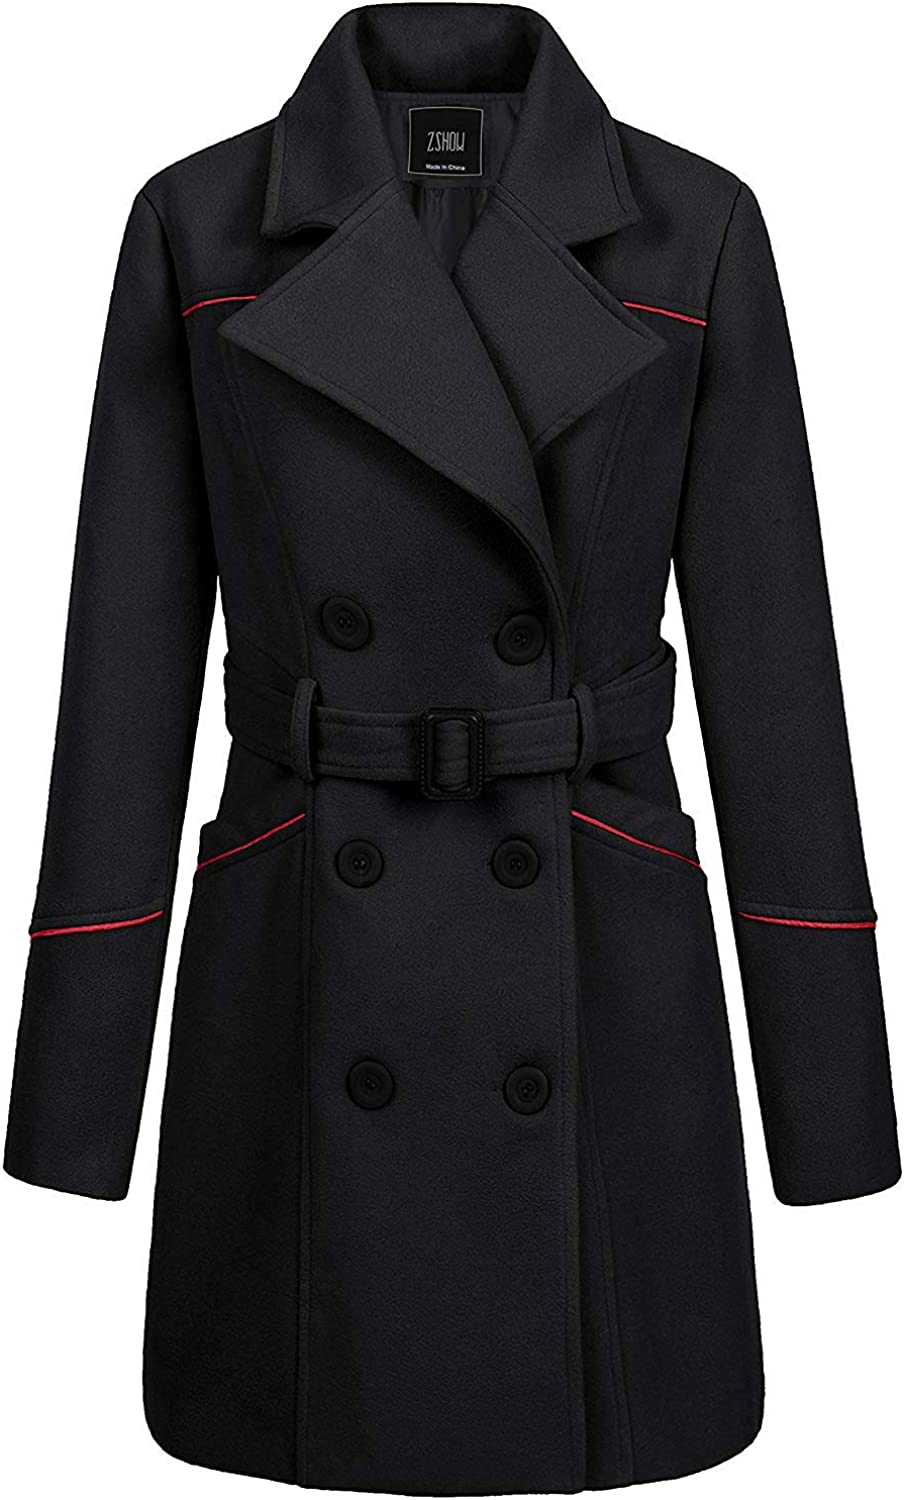 ZSHOW Women's Double Clearance trust SALE Limited time Breasted Lapel Coat with Wrap Belt